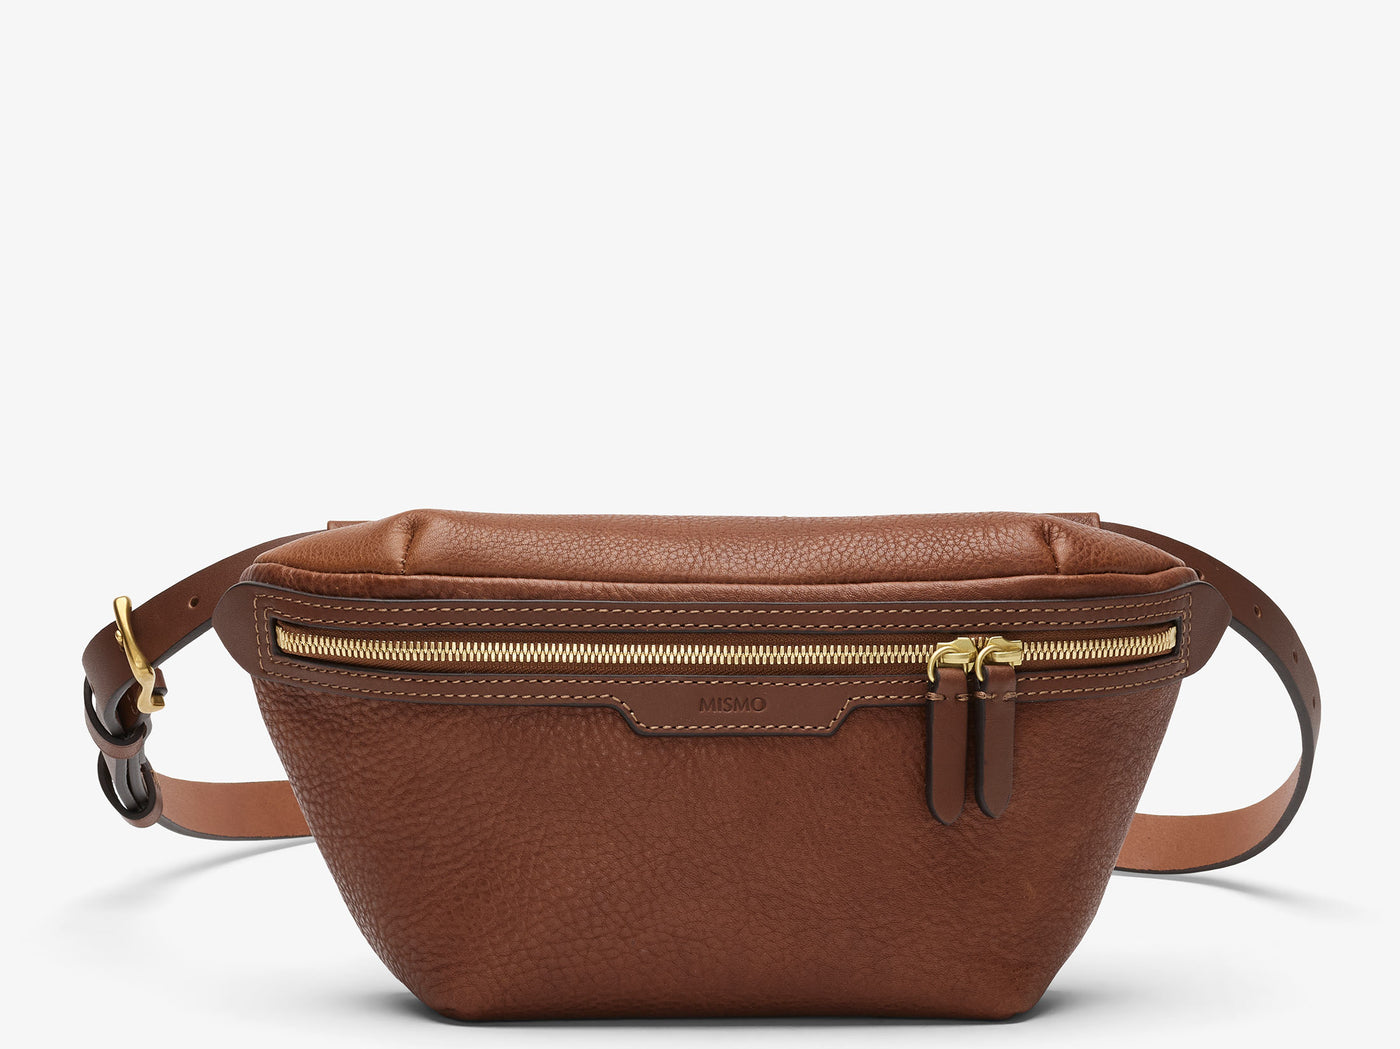 Belt Bag - Tabac/Cuoio